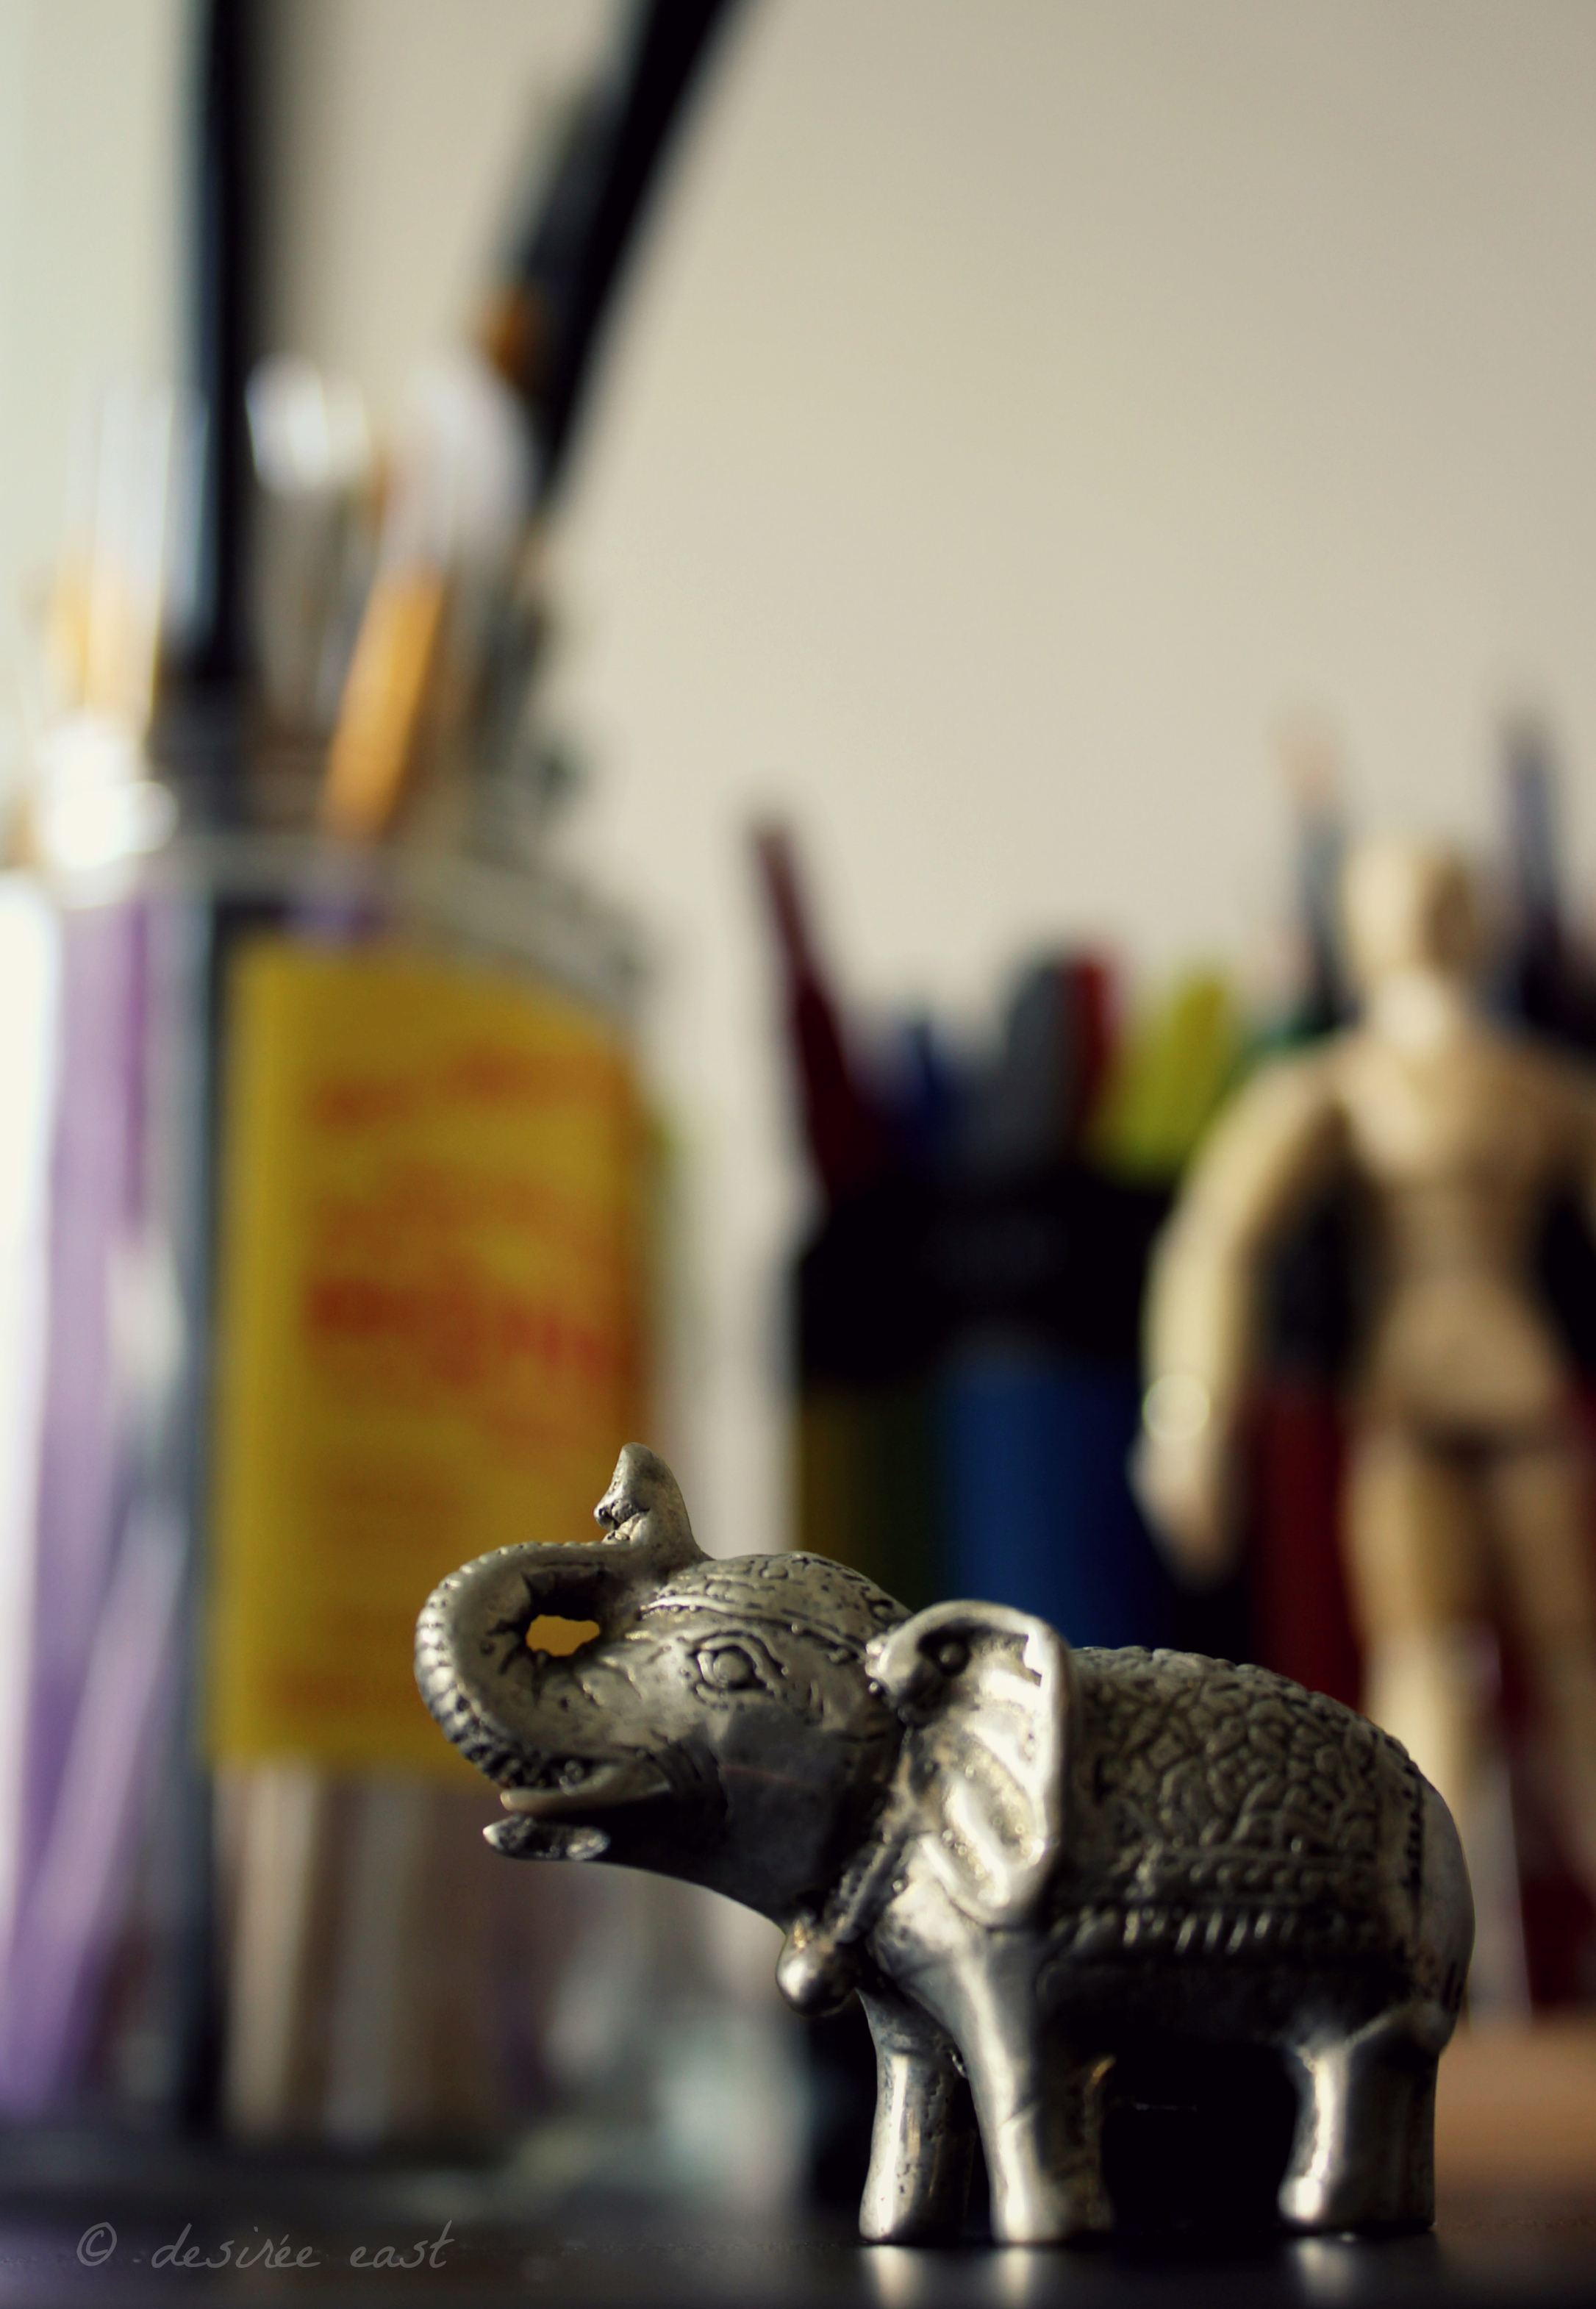 a gift from bali and my tiny, little studio mascot. photo by desiree east